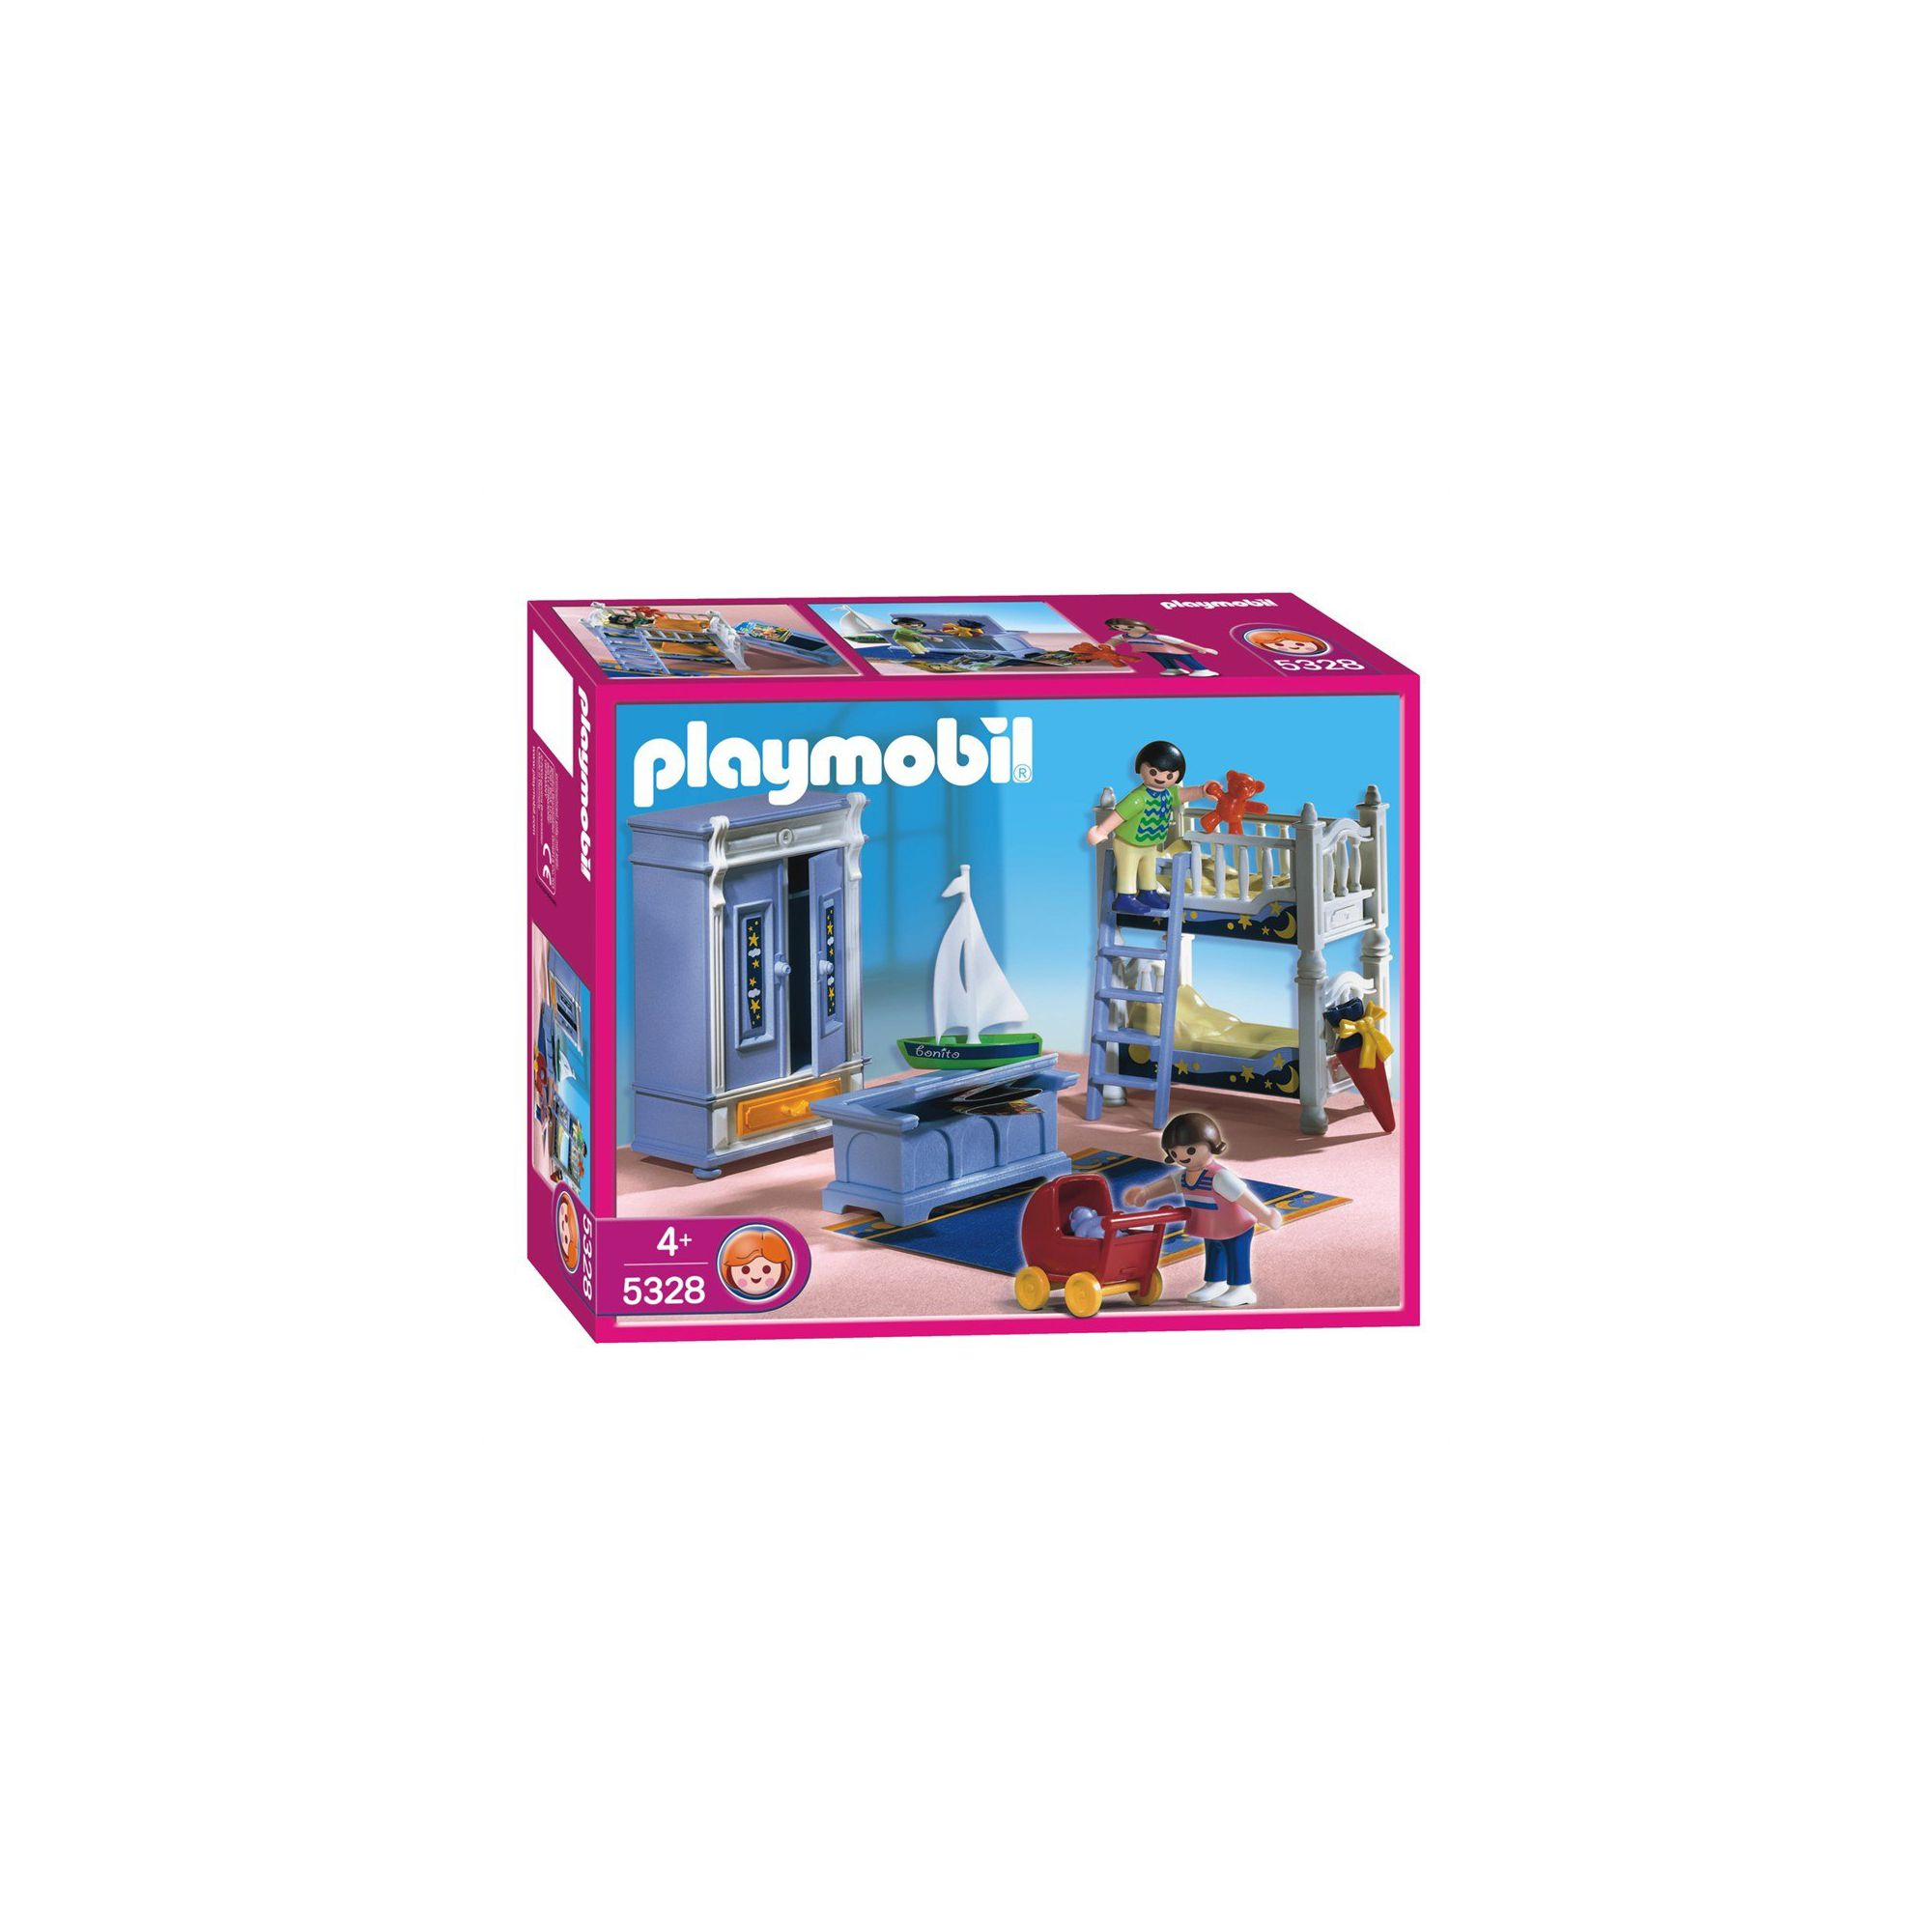 Buy cheap playmobil dollhouse at playmobil toys compare for Playmobil kinderzimmer 4287